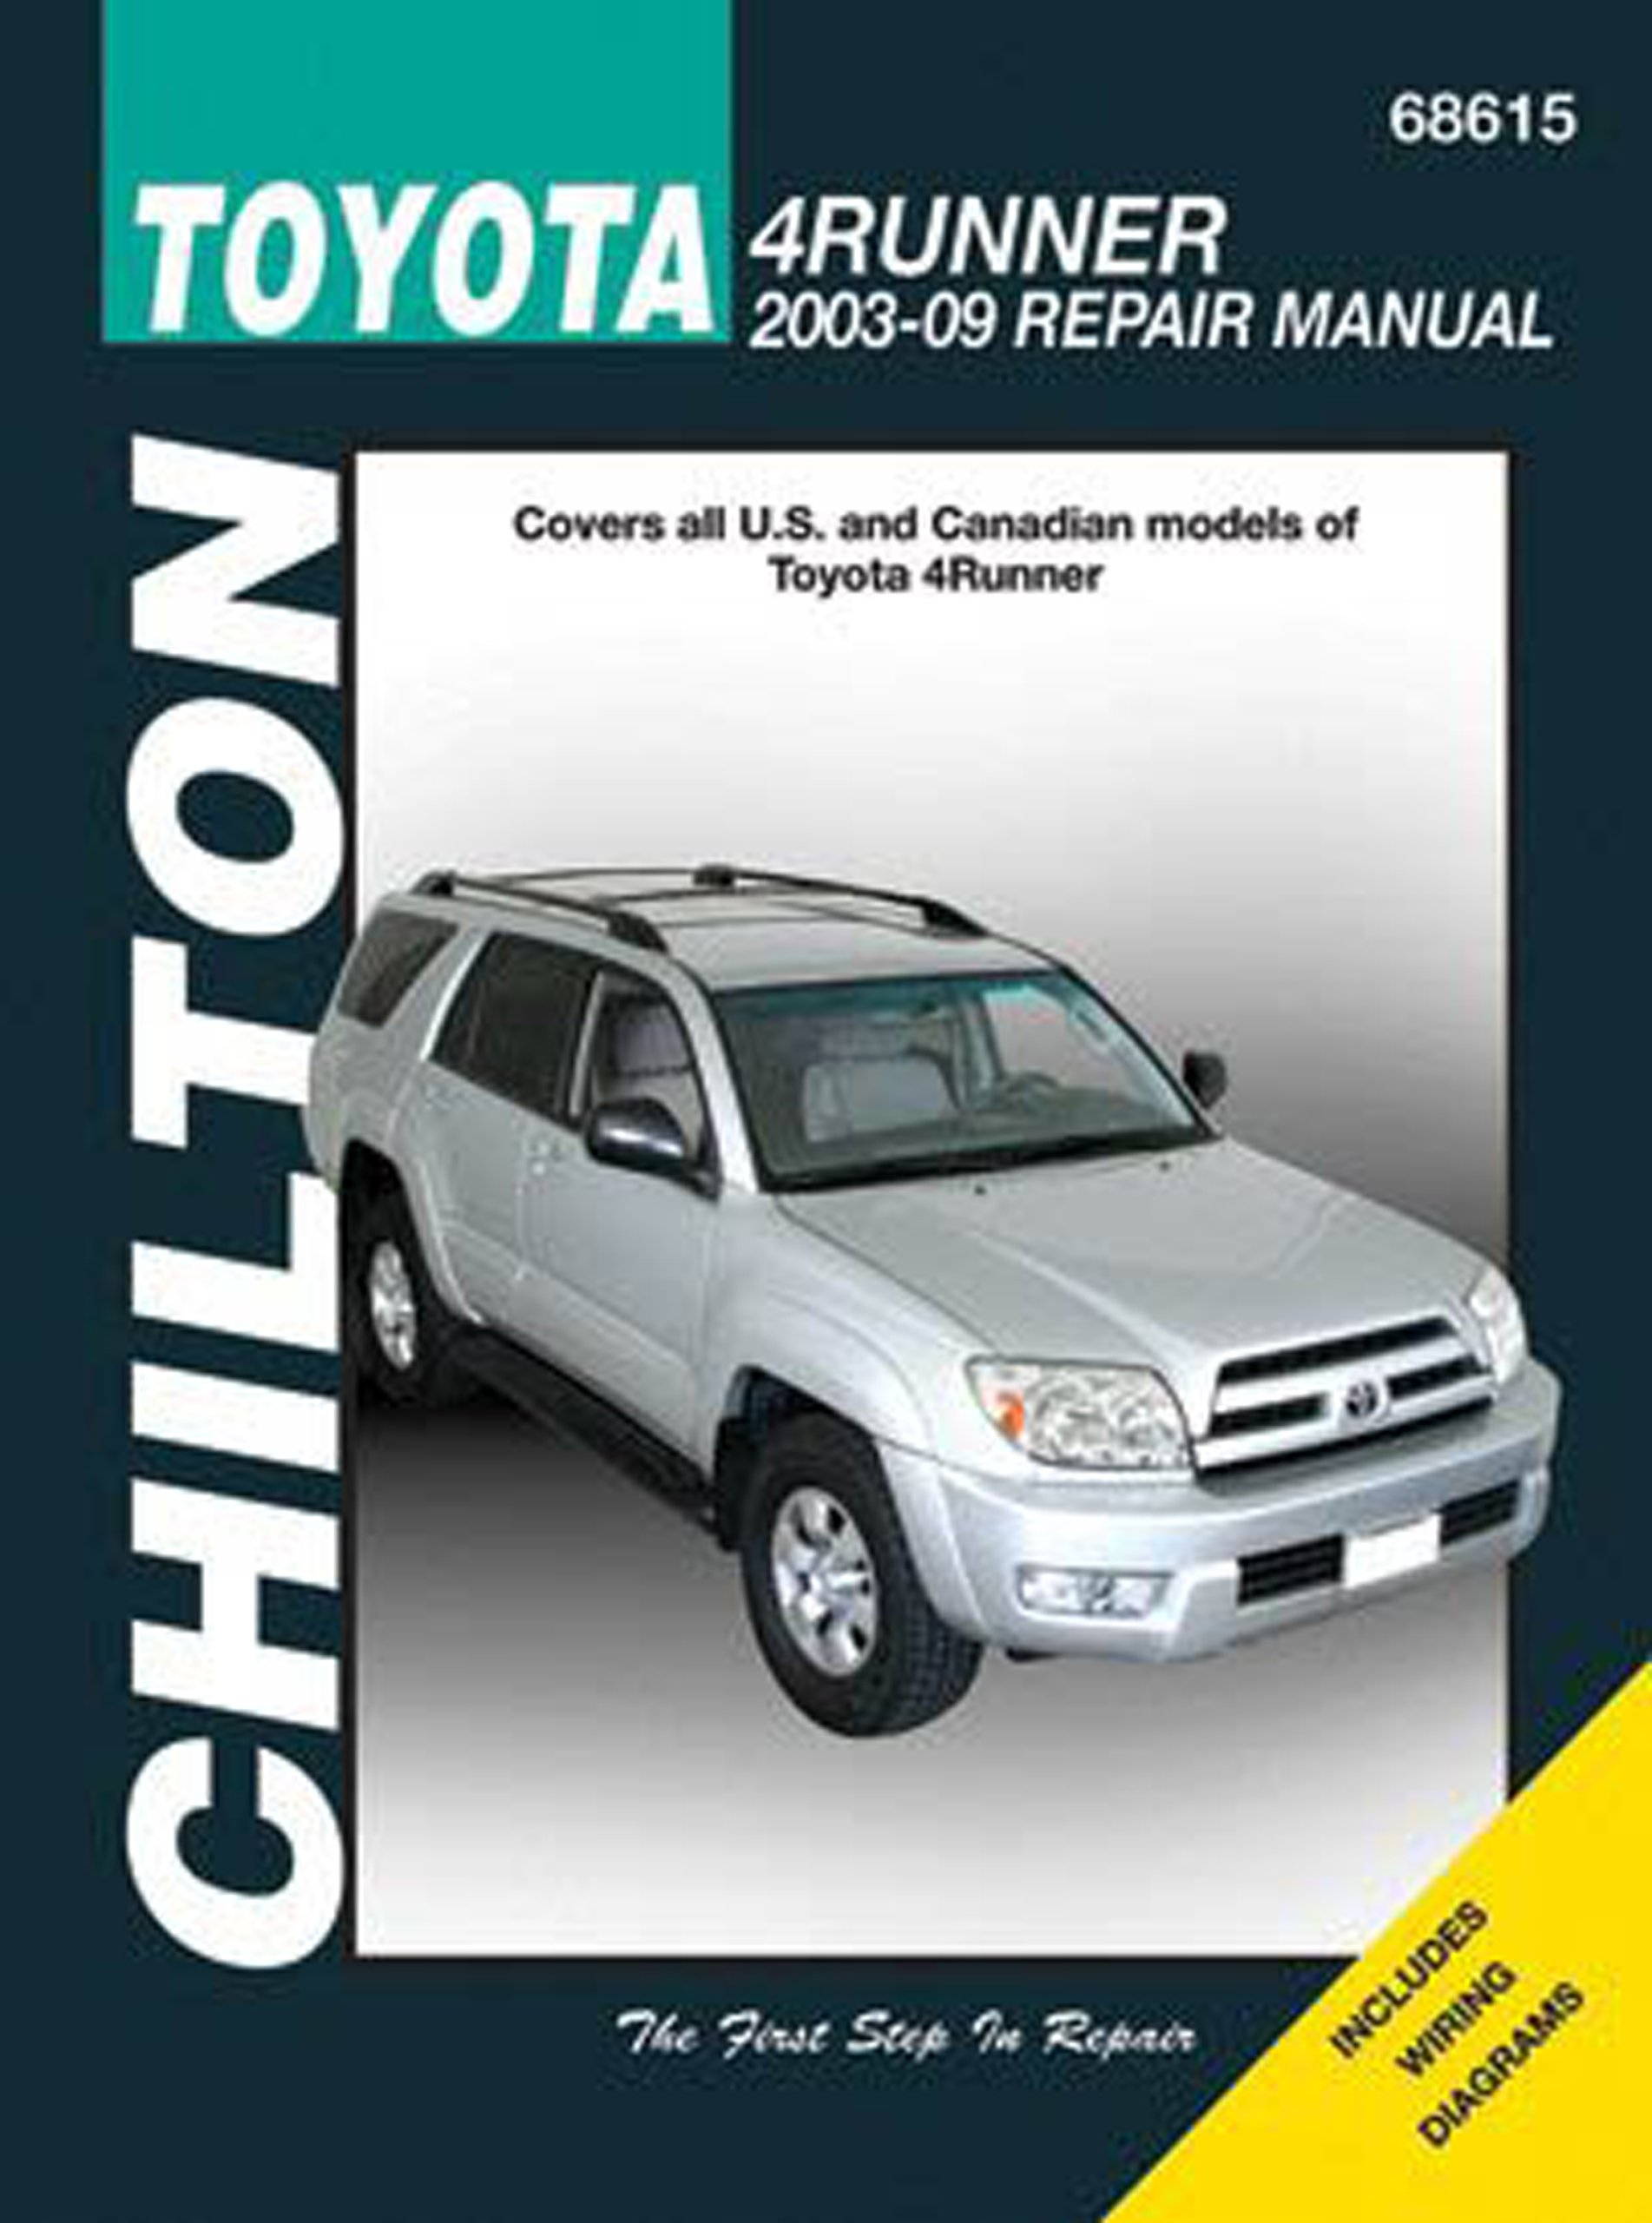 Toyota 4runner 2003 09 Covers All Us And Canadian Models Of Land Cruiser Haynes Repair Manual 4runn Chilton Automotive Books Publishing